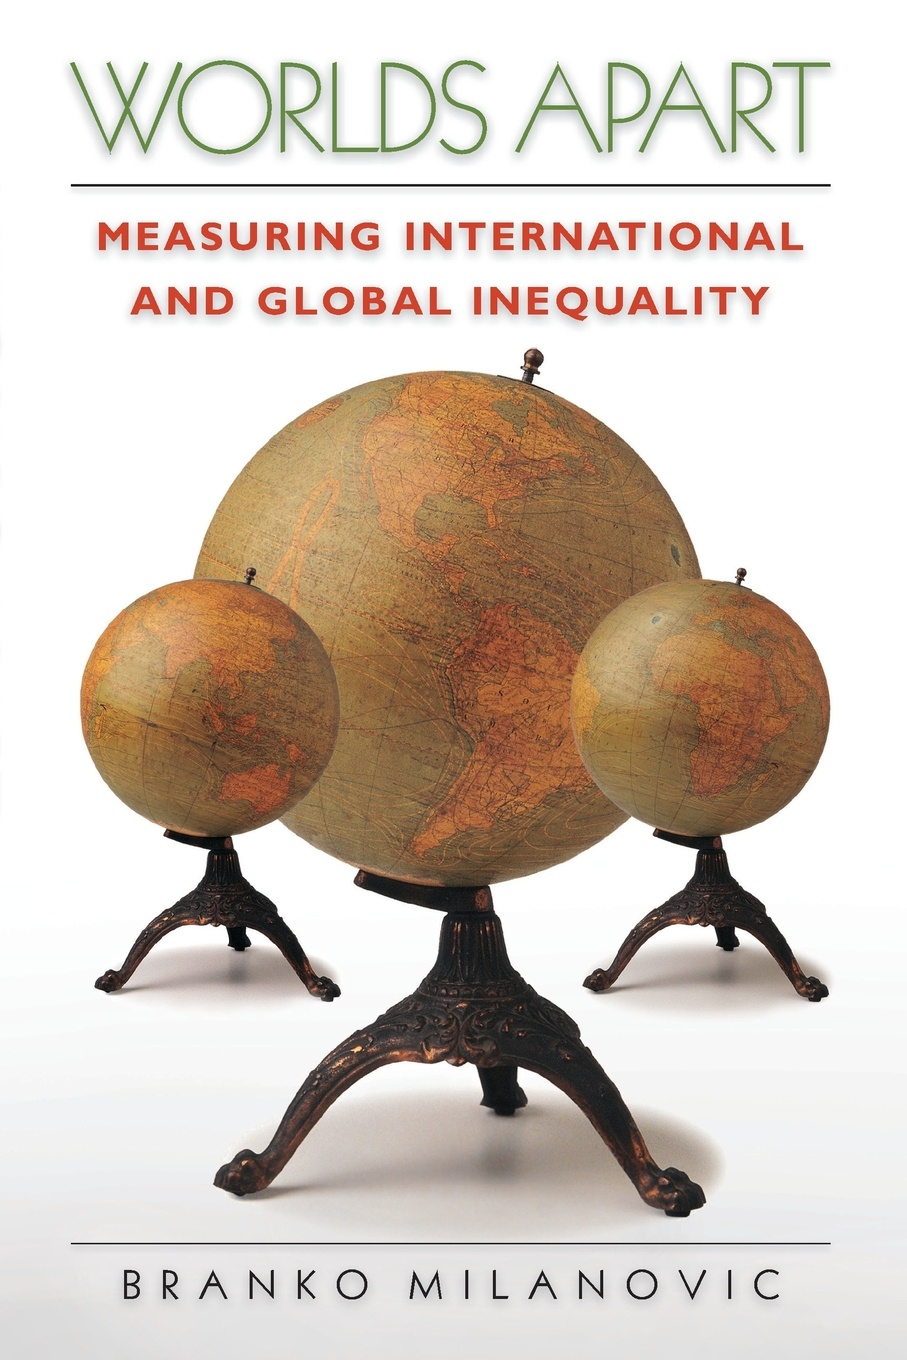 Branko Milanovic Worlds Apart. Measuring International and Global Inequality goran therborn the killing fields of inequality